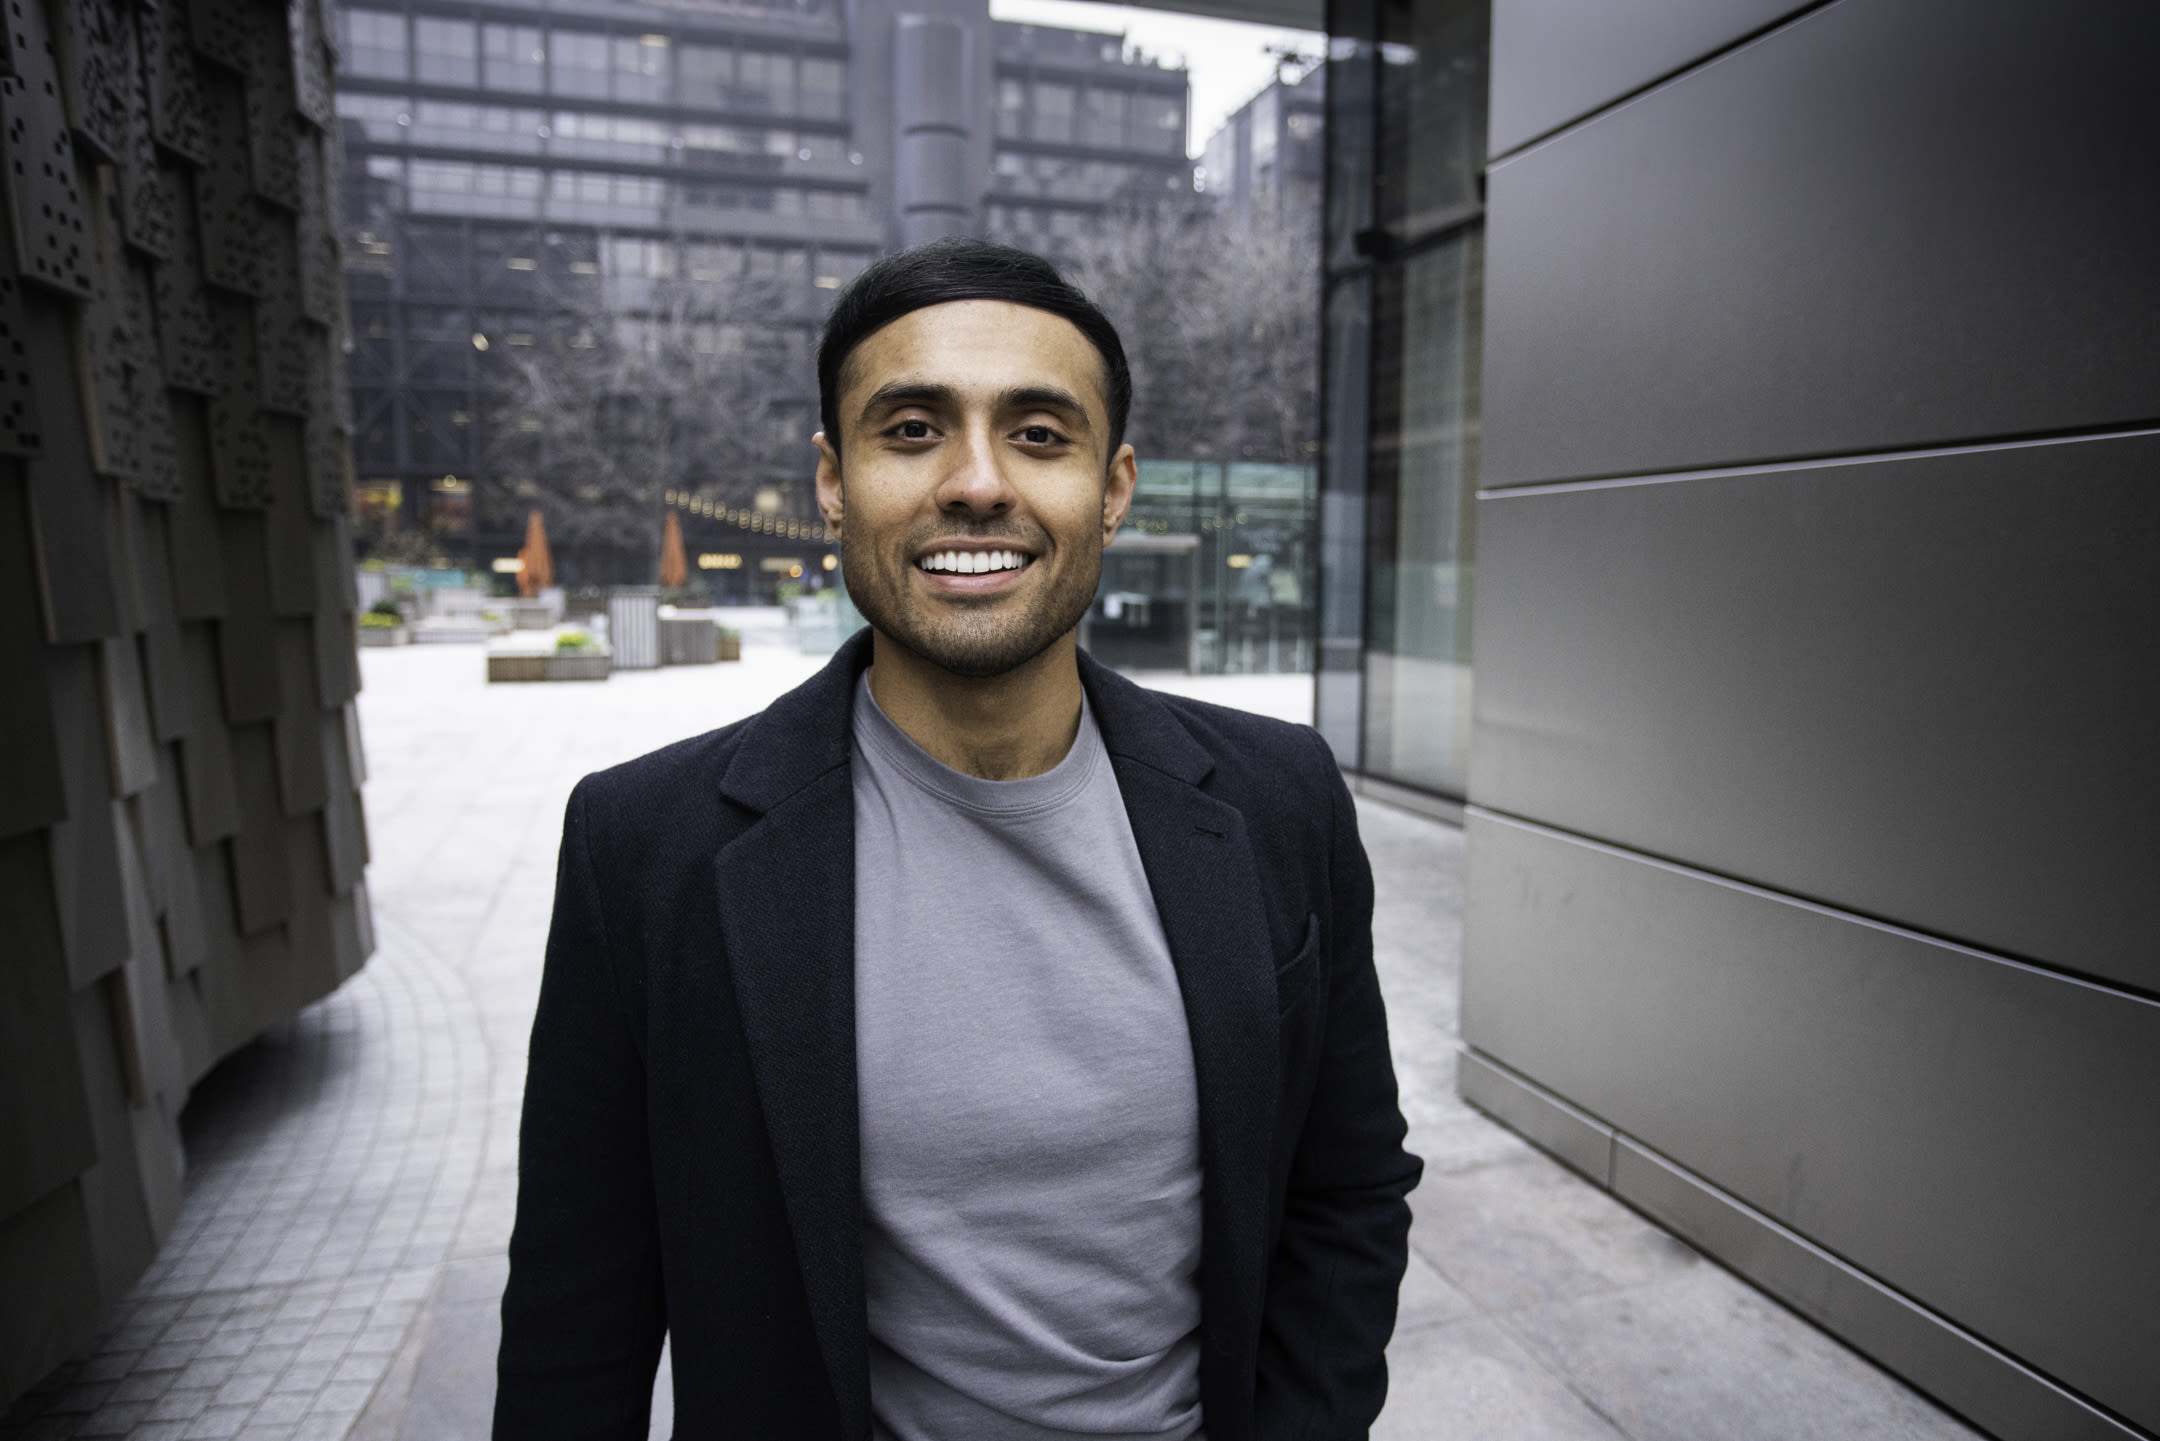 Photo of Dhruvin Patel standing outdoors